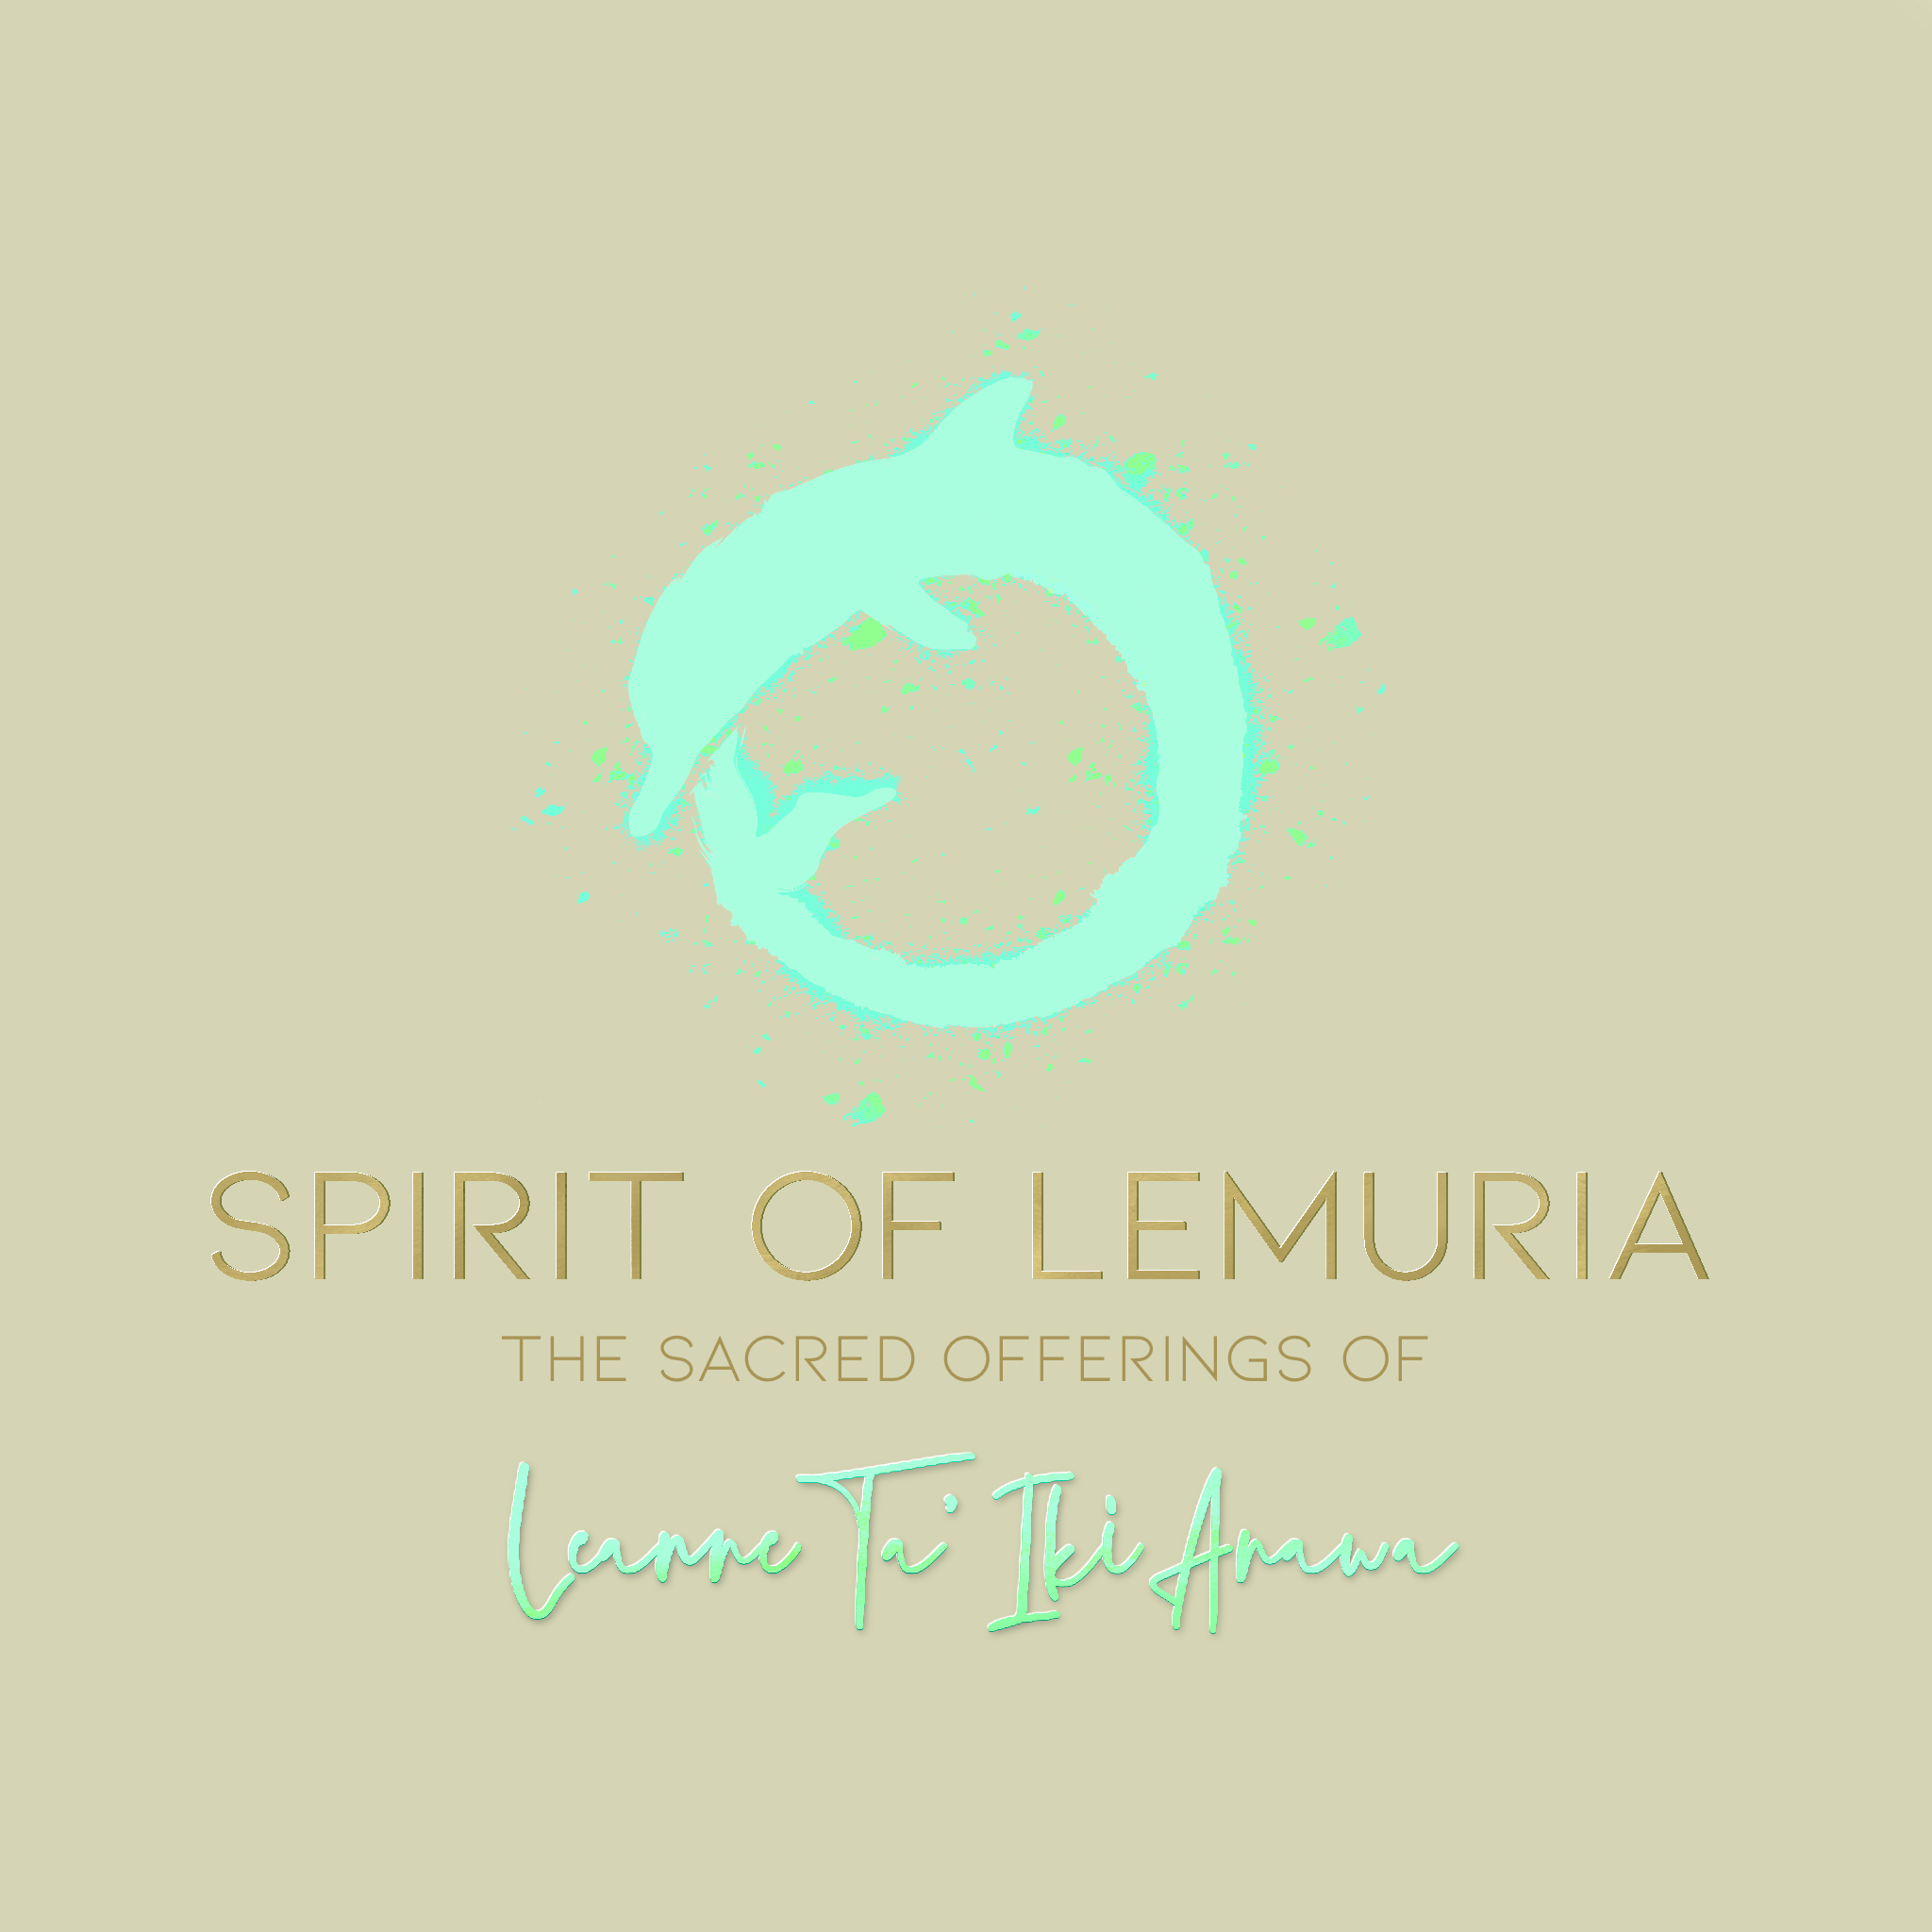 Spirit of Lemuria